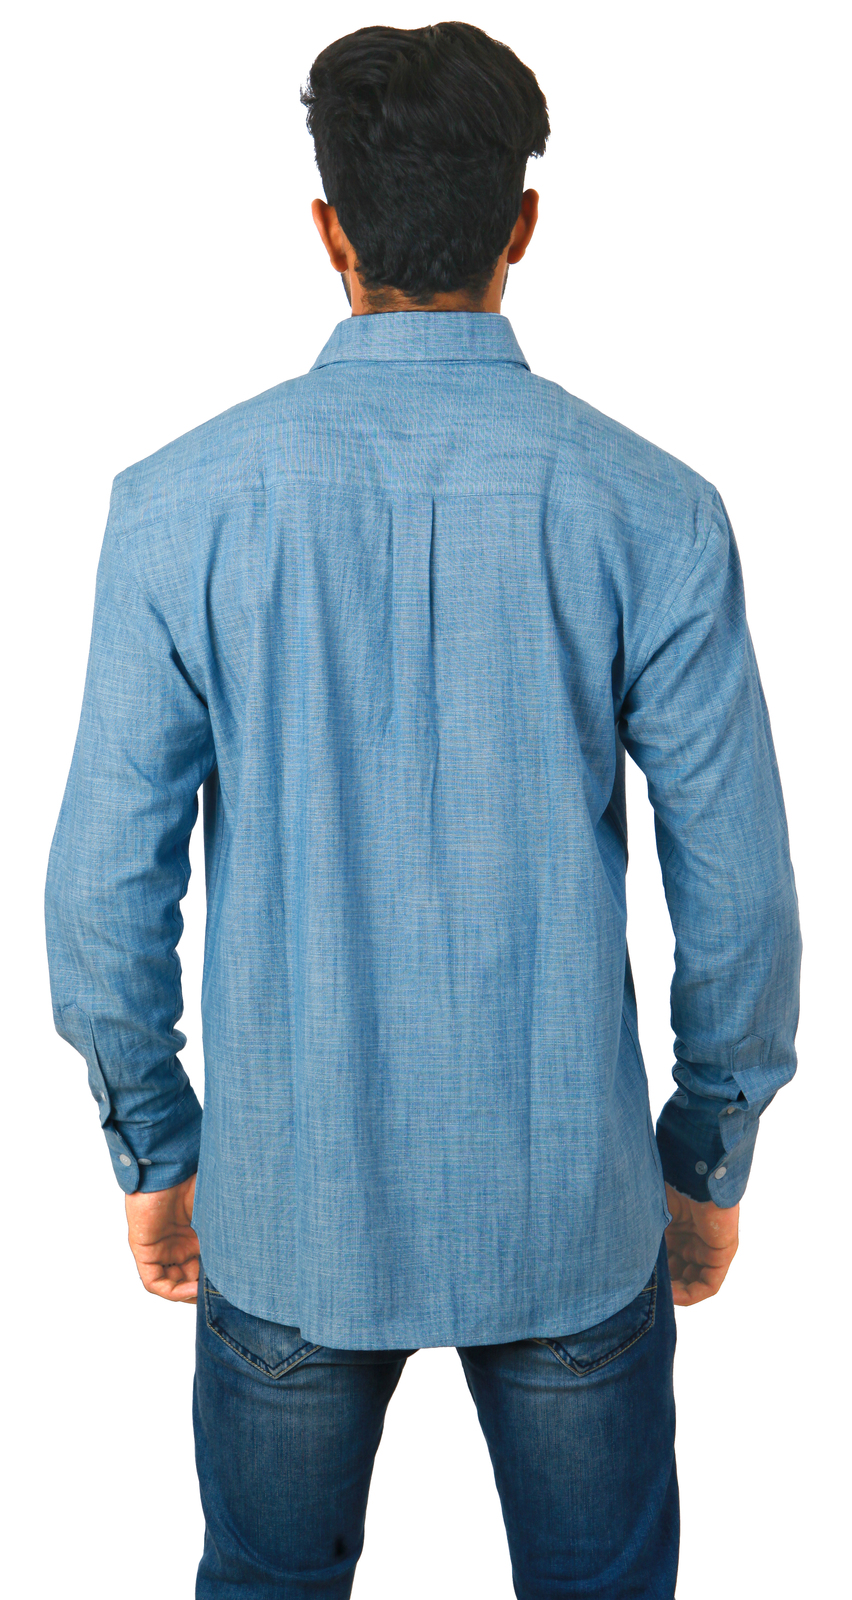 Port & Company SP10 Men Long Sleeve Value Denim Shirt Dress Shirt Upload your design or enter text and set project details. We'll review your design, make any repairs and send a proof (all for FREE).